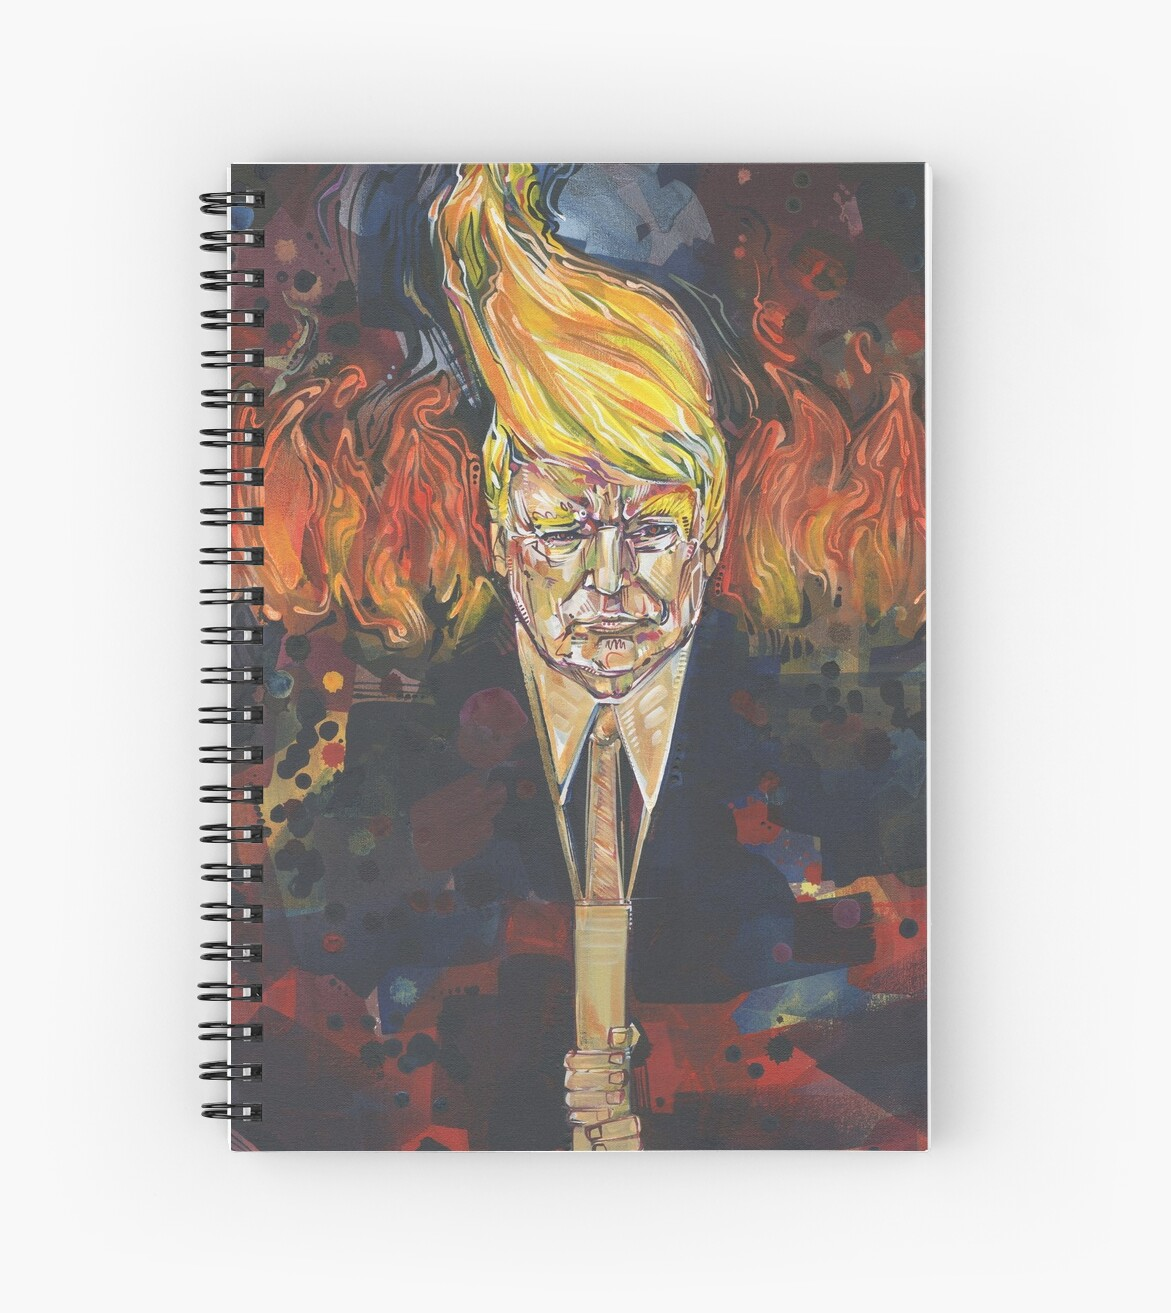 Light of the right (Tiki torch Trump) painting - 2017 by Gwenn Seemel